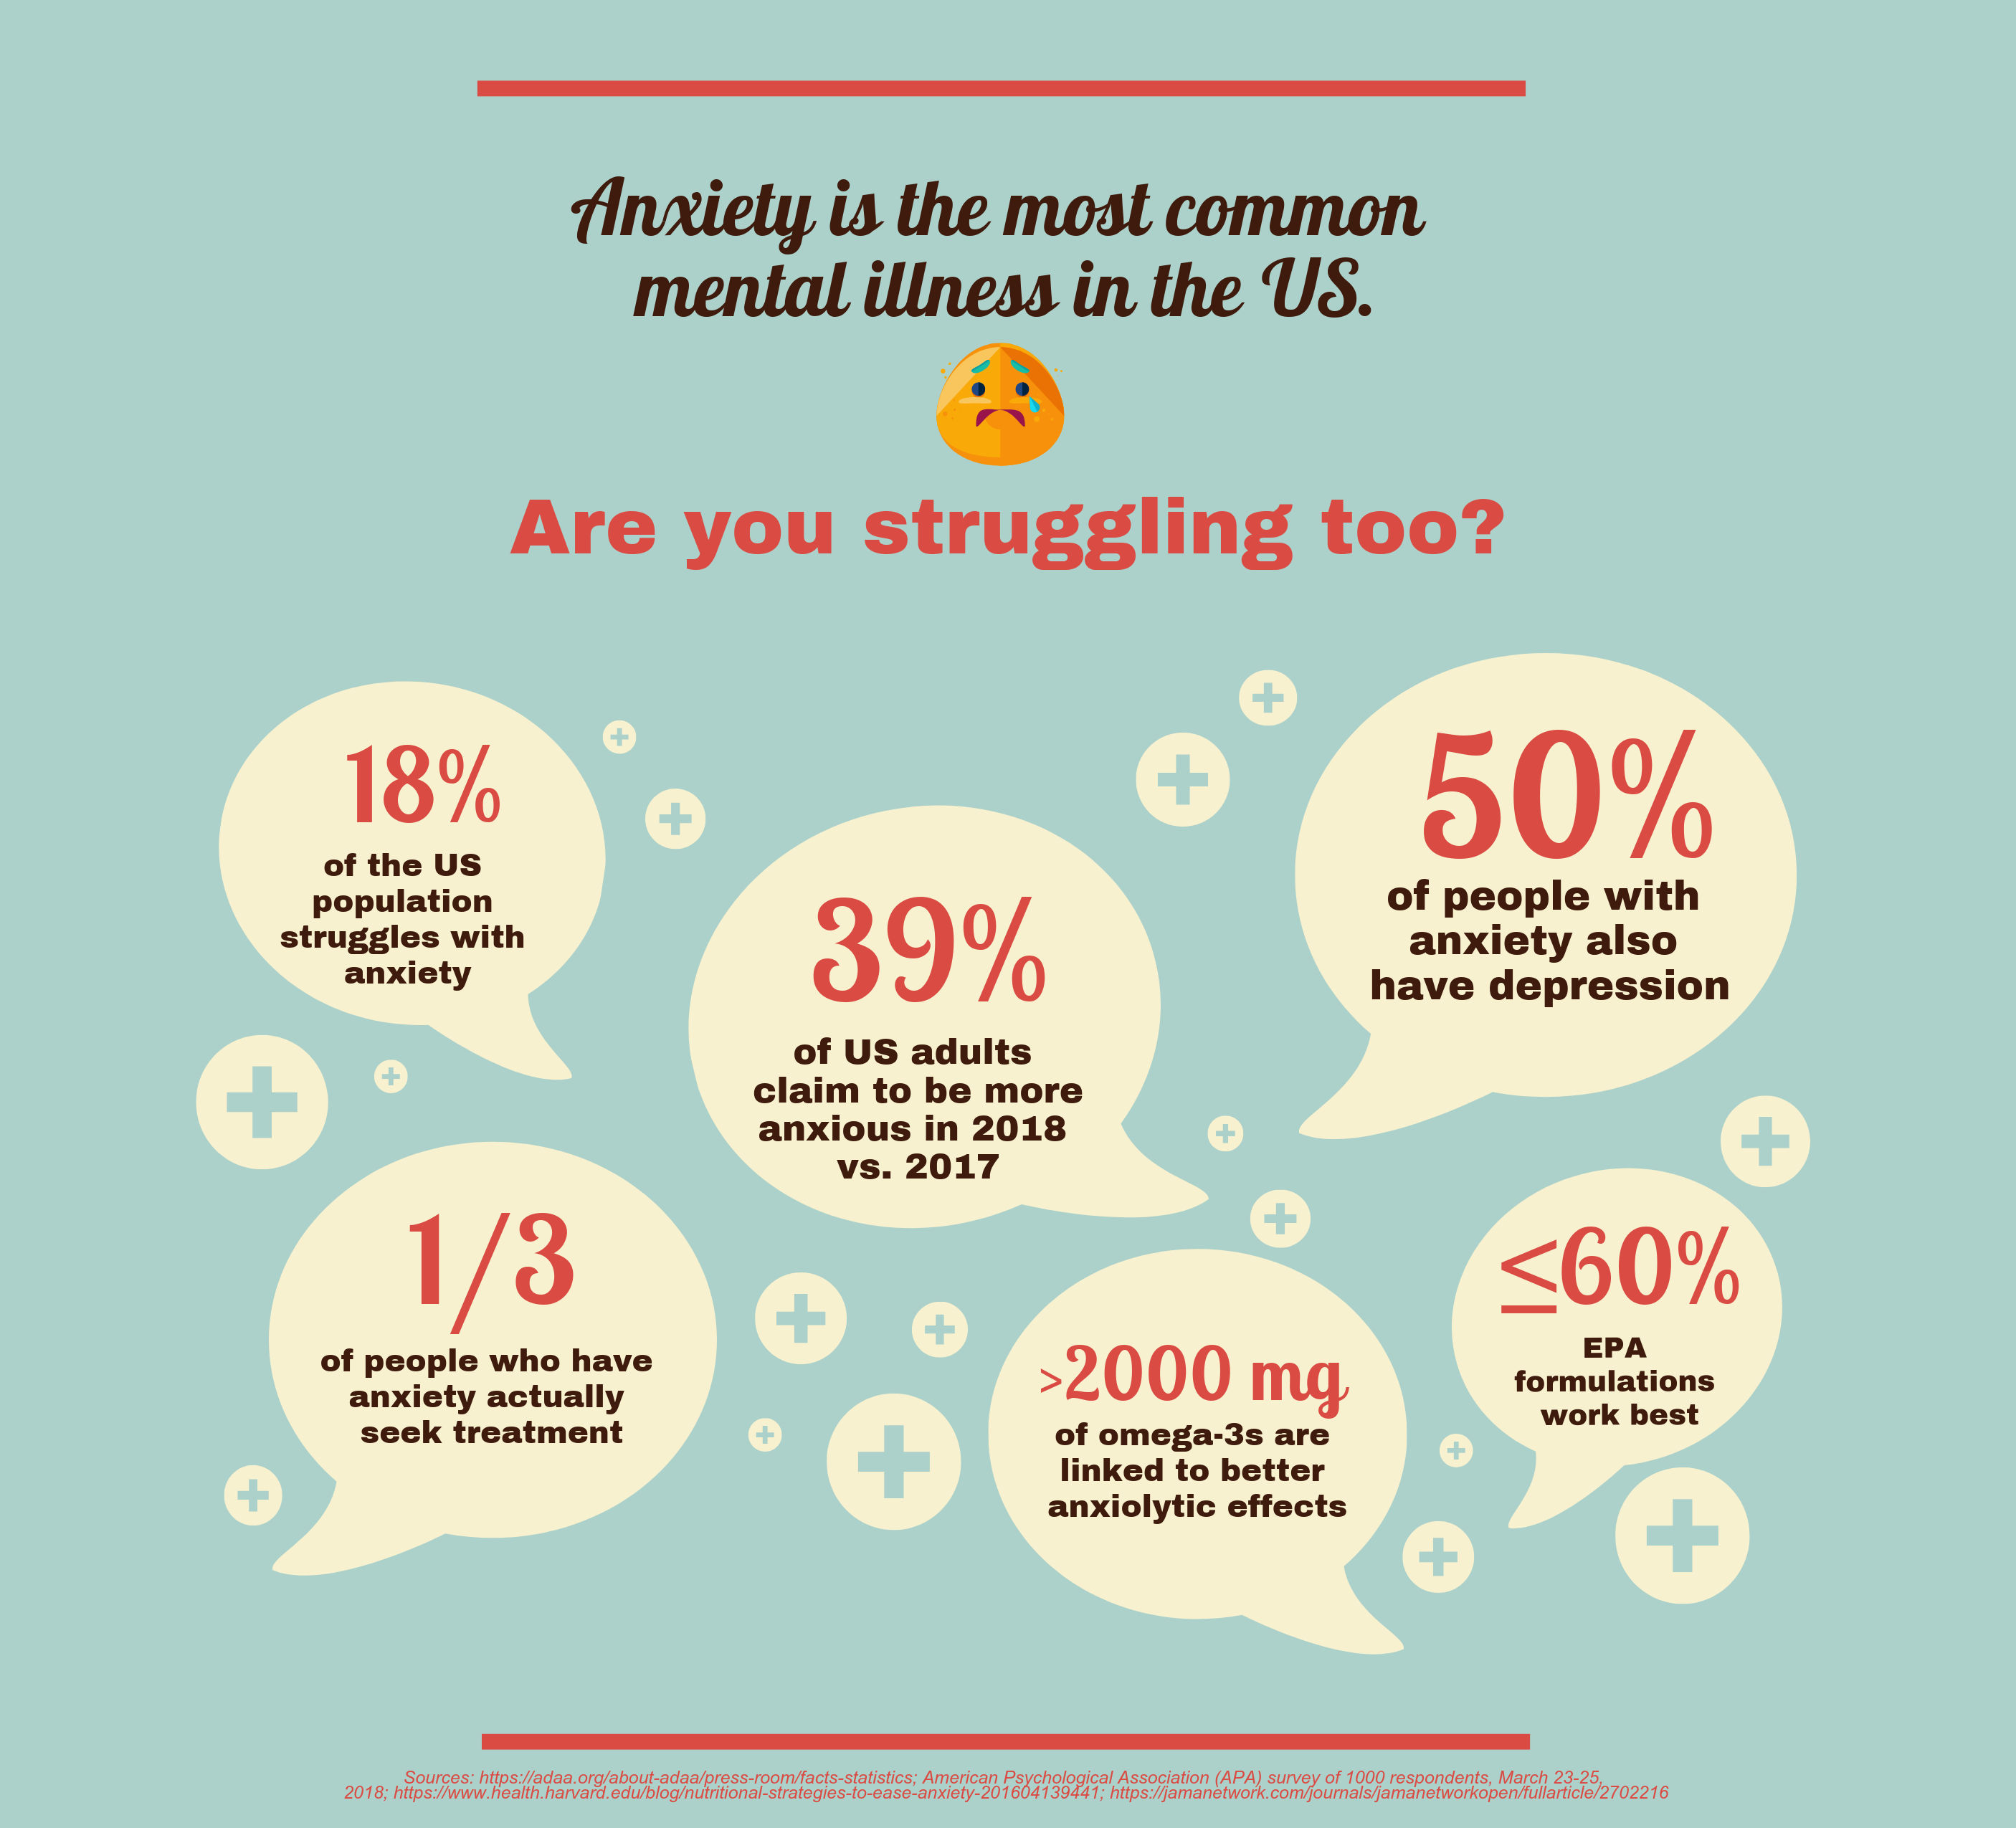 Infographic on anxiety prevalence and nutritional solutions like omega-3s